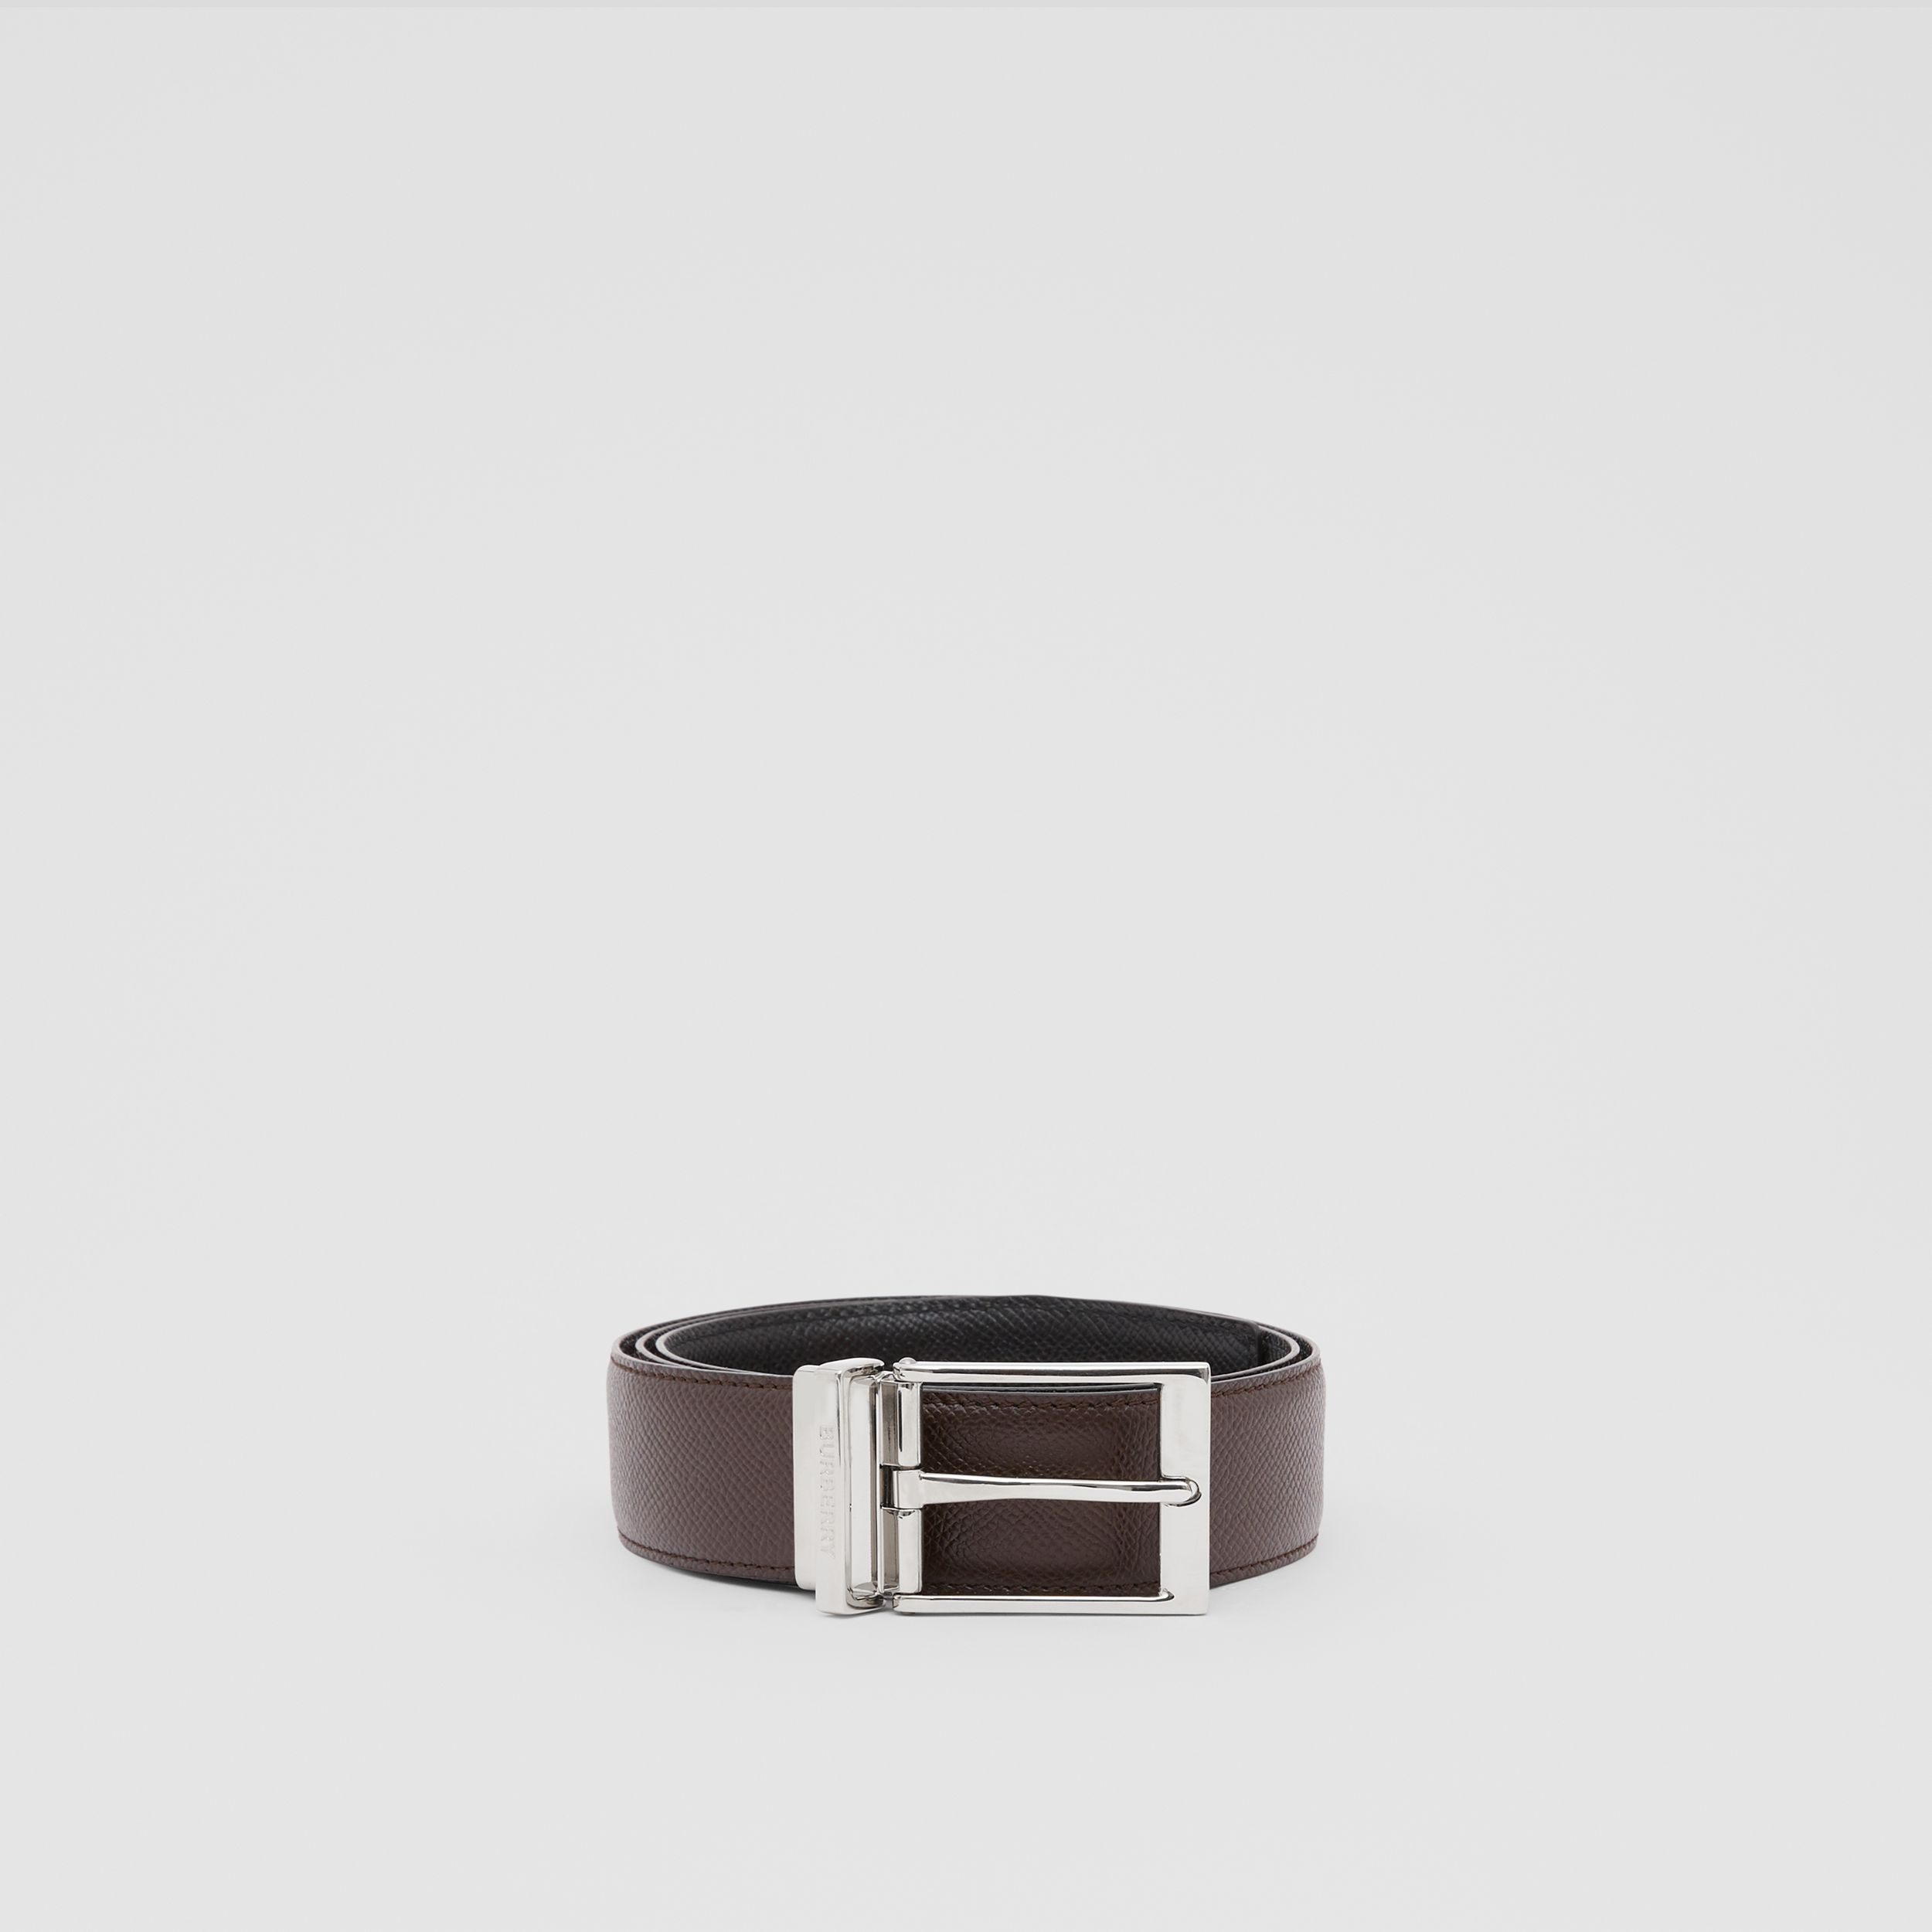 Reversible Grainy Leather Belt in Black/chocolate - Men | Burberry - 3